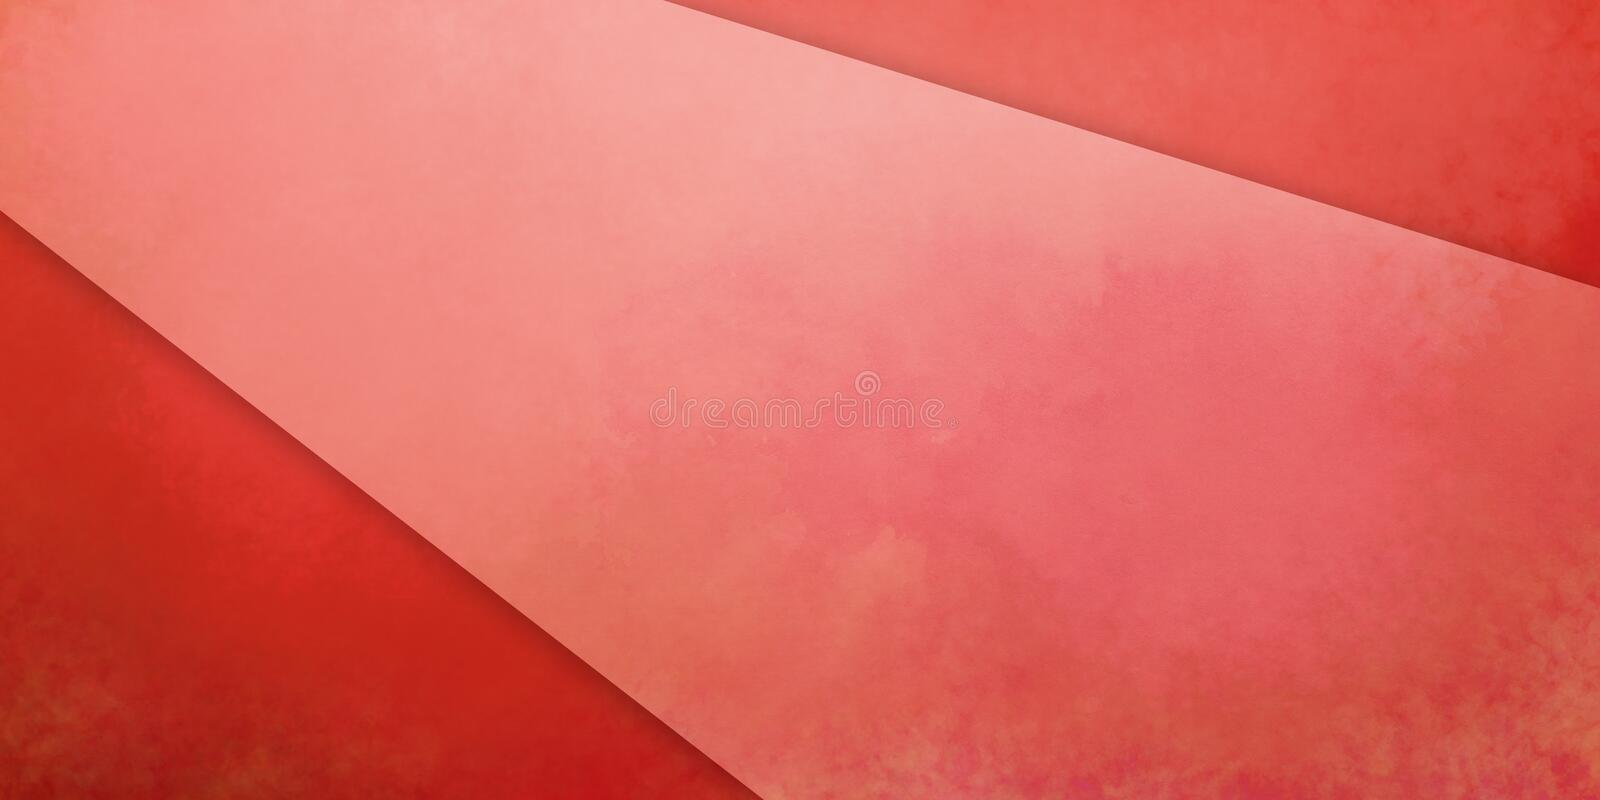 Red background with white and pink diagonal stripe or shape with watercolor stains and old vintage grunge texture royalty free illustration